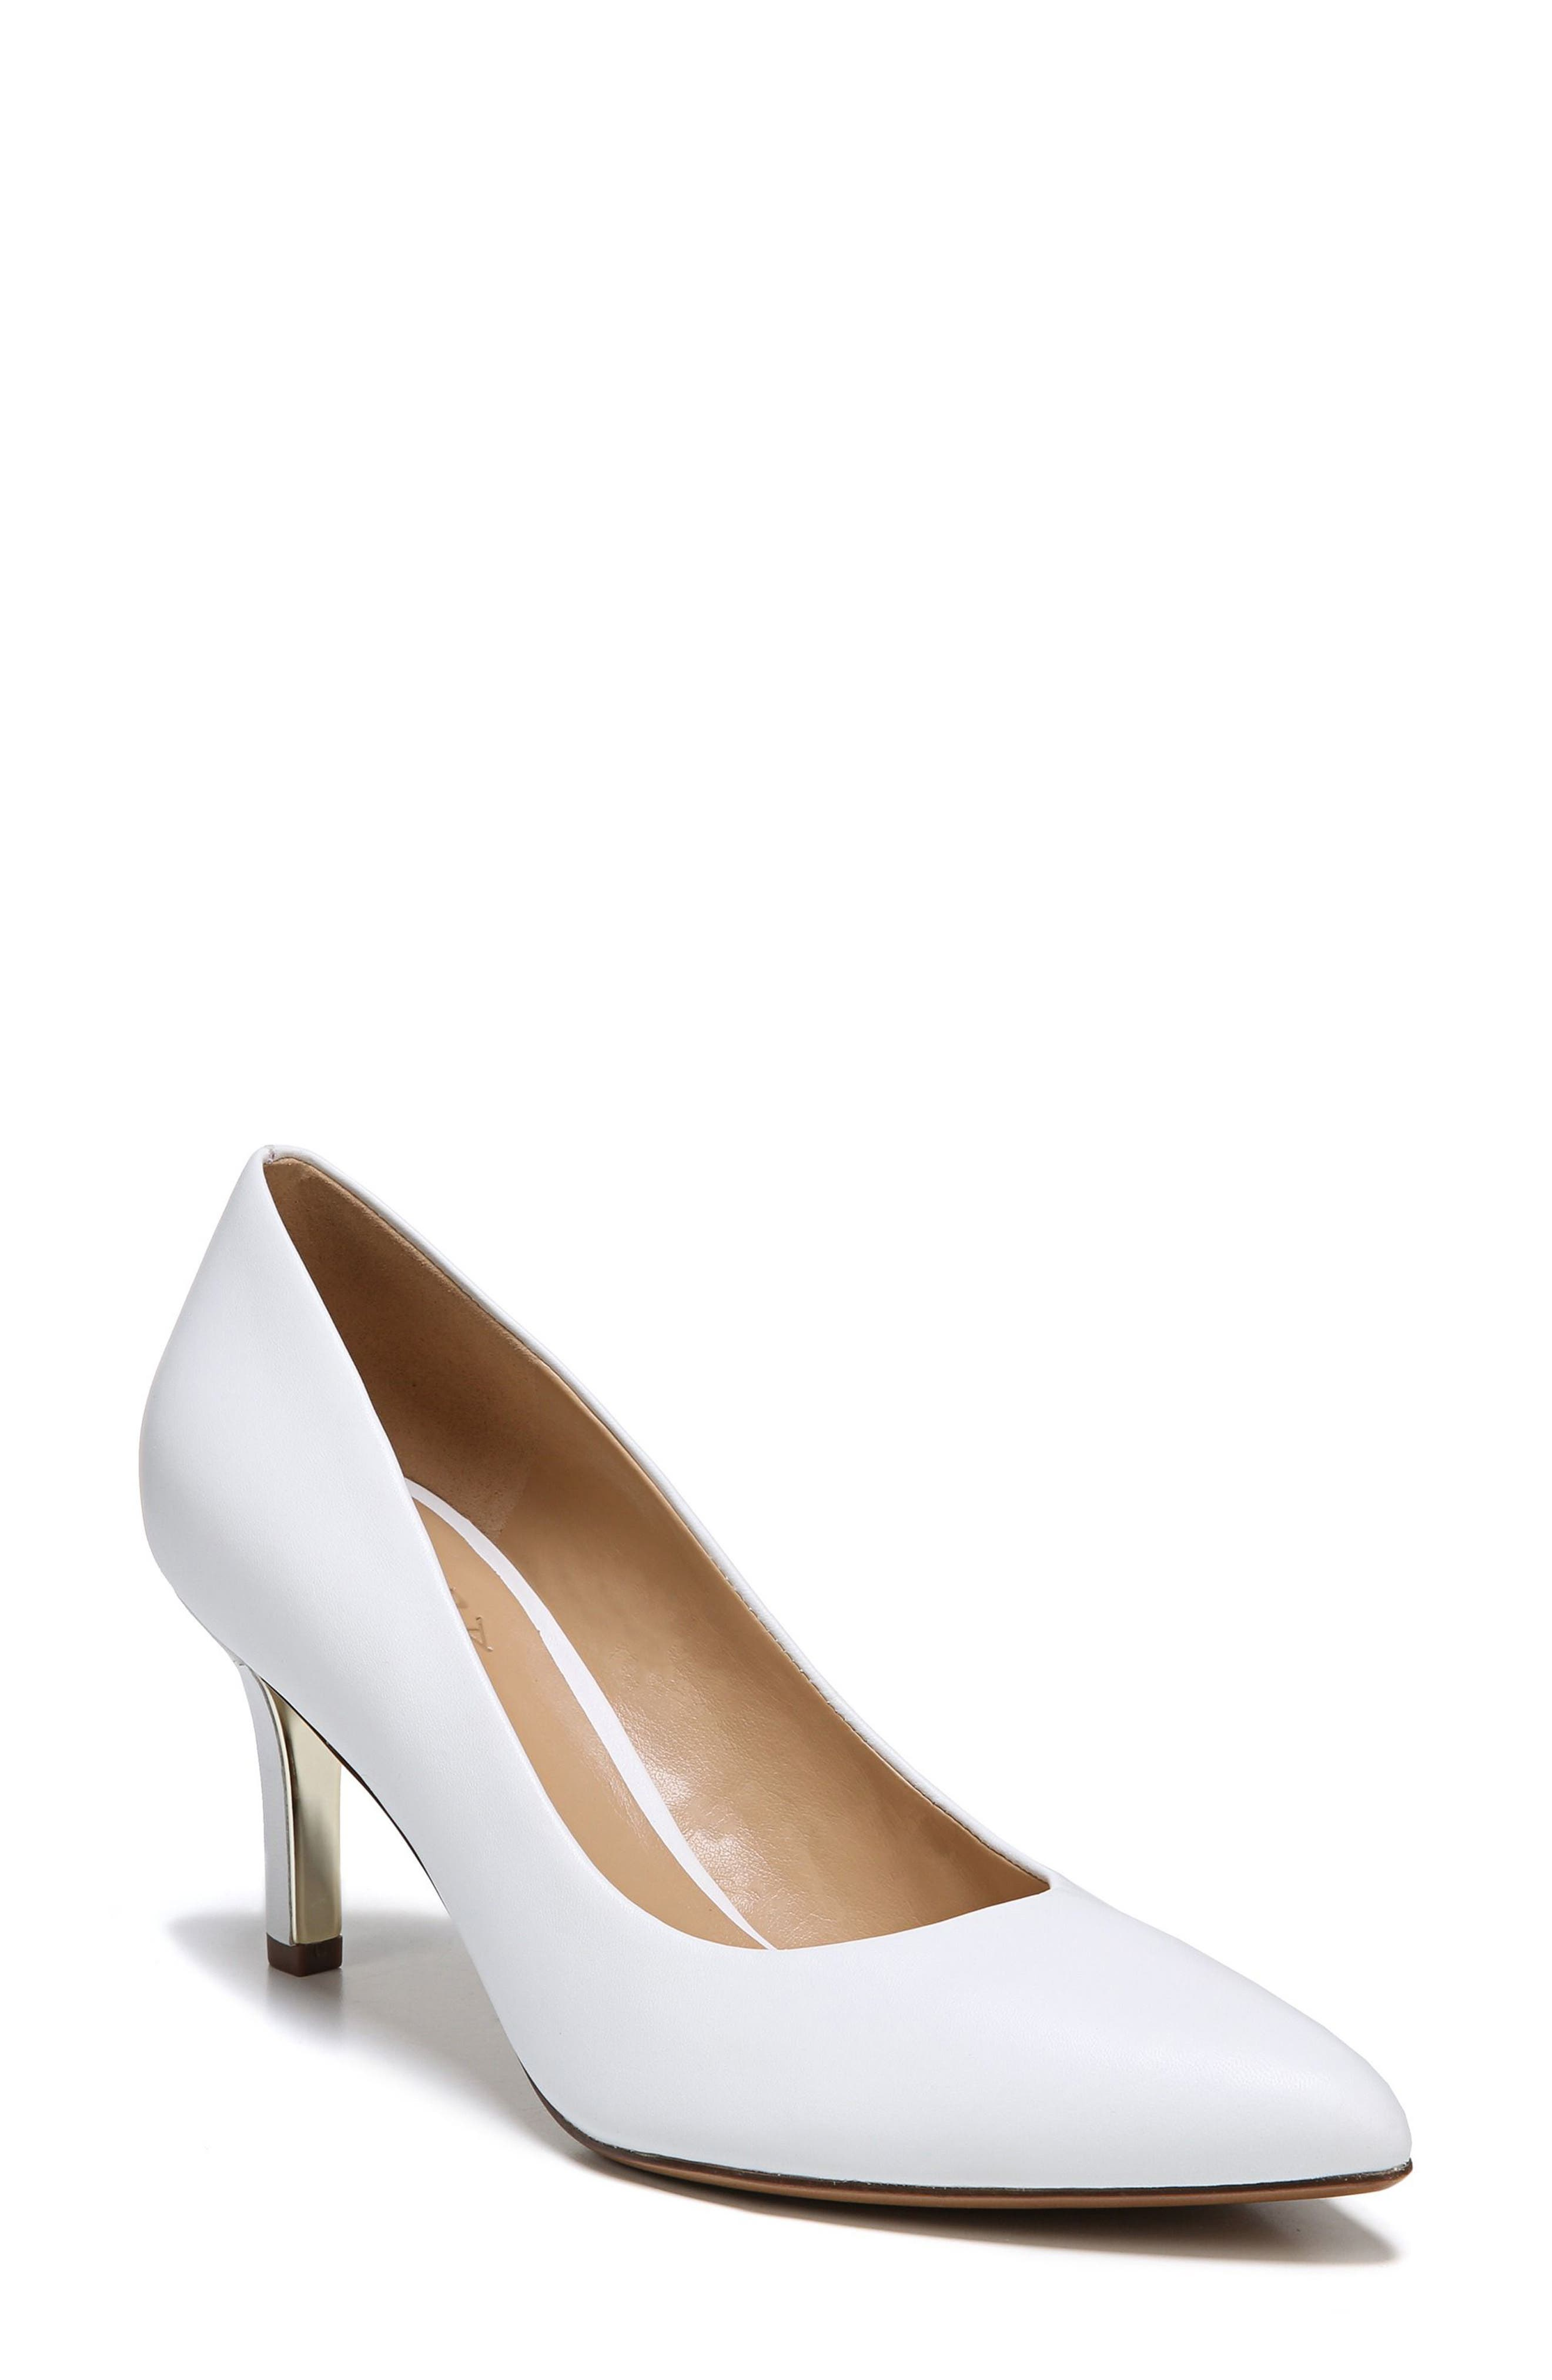 Alternate Image 1 Selected - Naturalizer Natalie Pointy Toe Pump (Women)